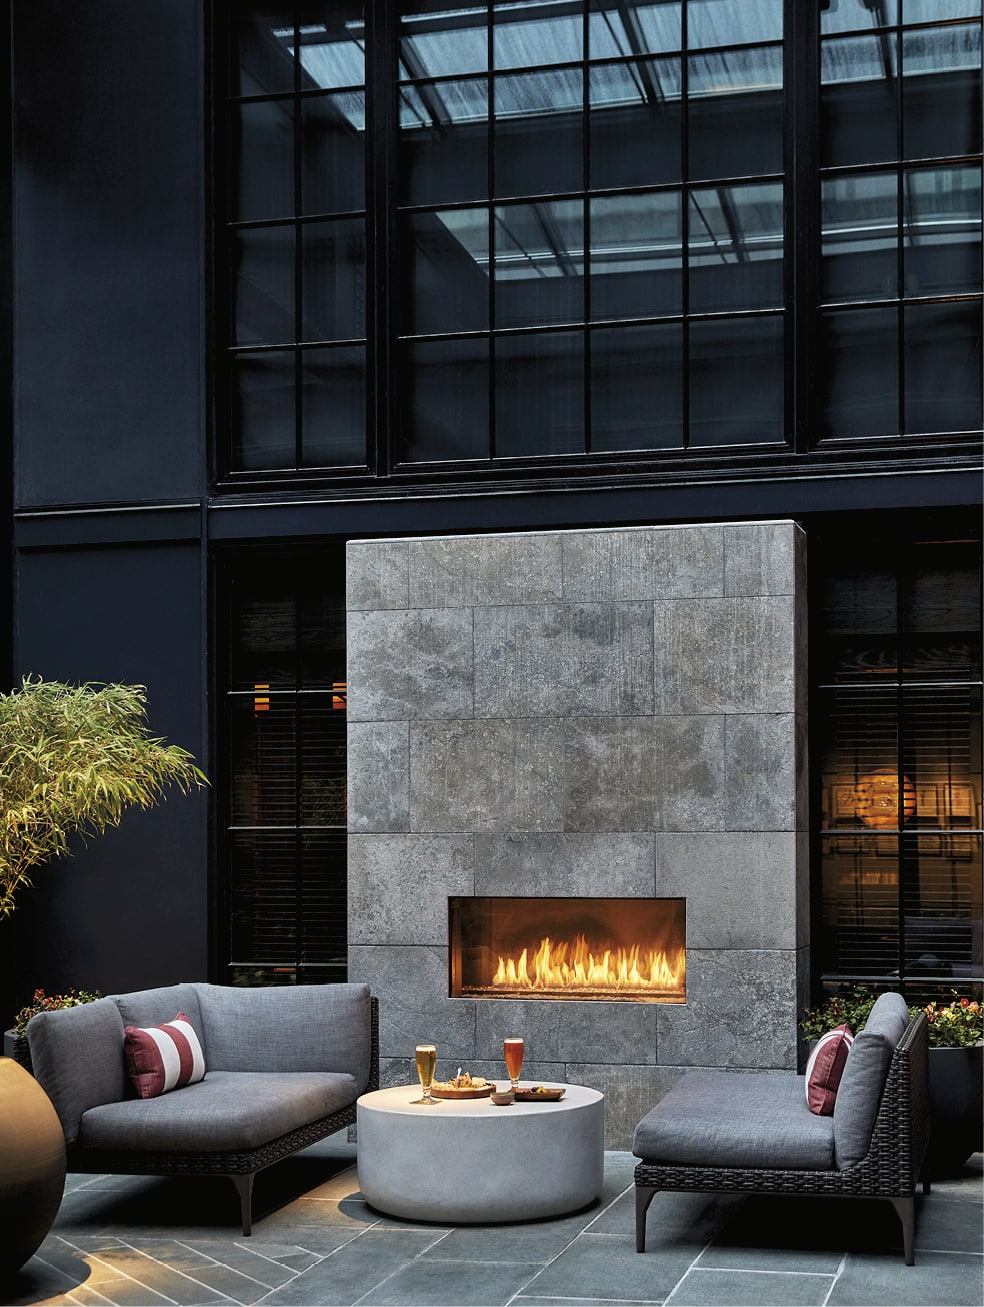 Outdoor fireplace with comfortable seating